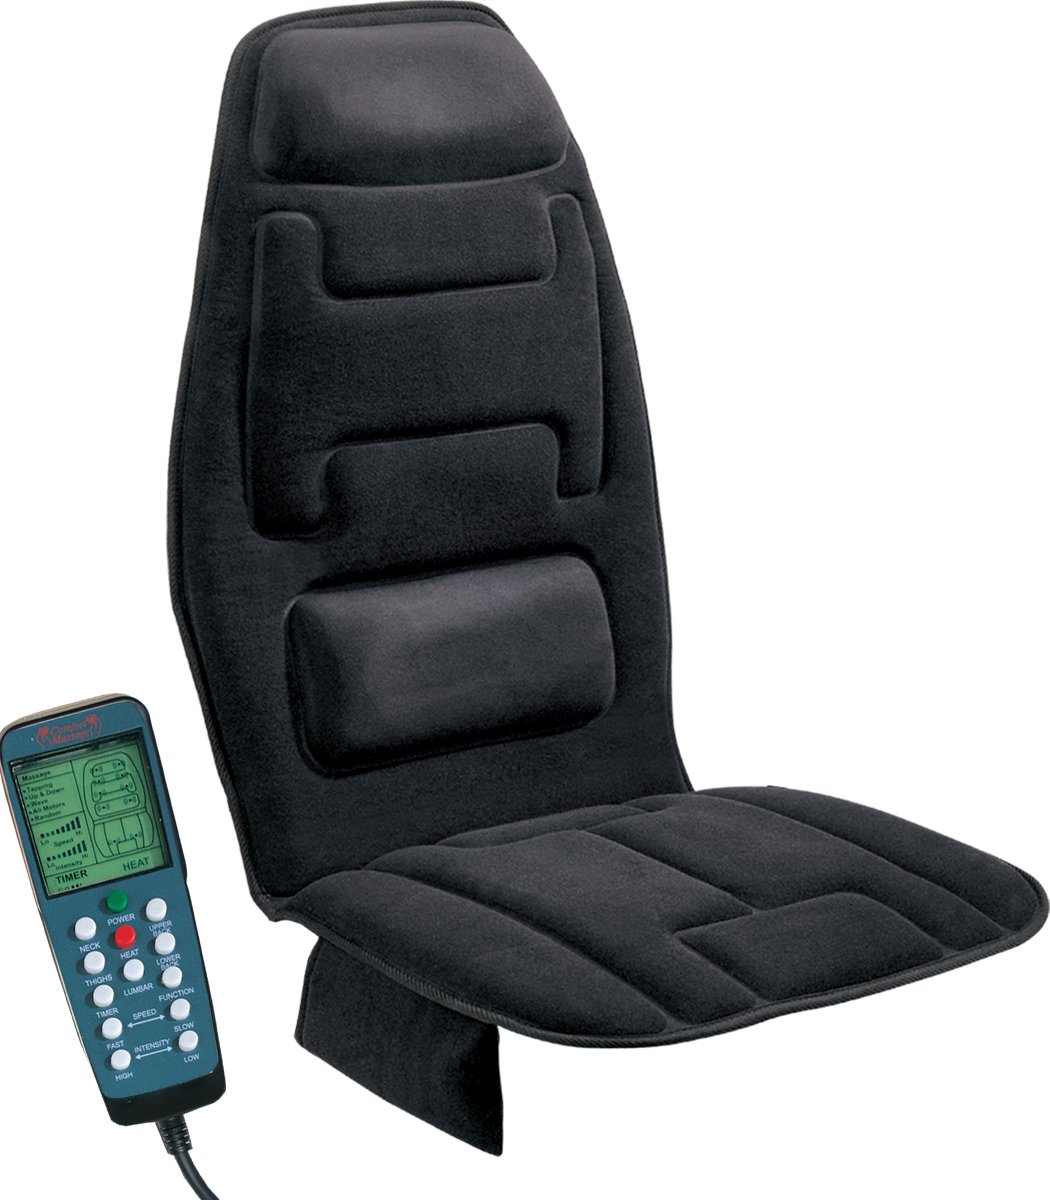 Amazon.com: Relaxzen 10-Motor Massage Seat Cushion with Heat, Black ...